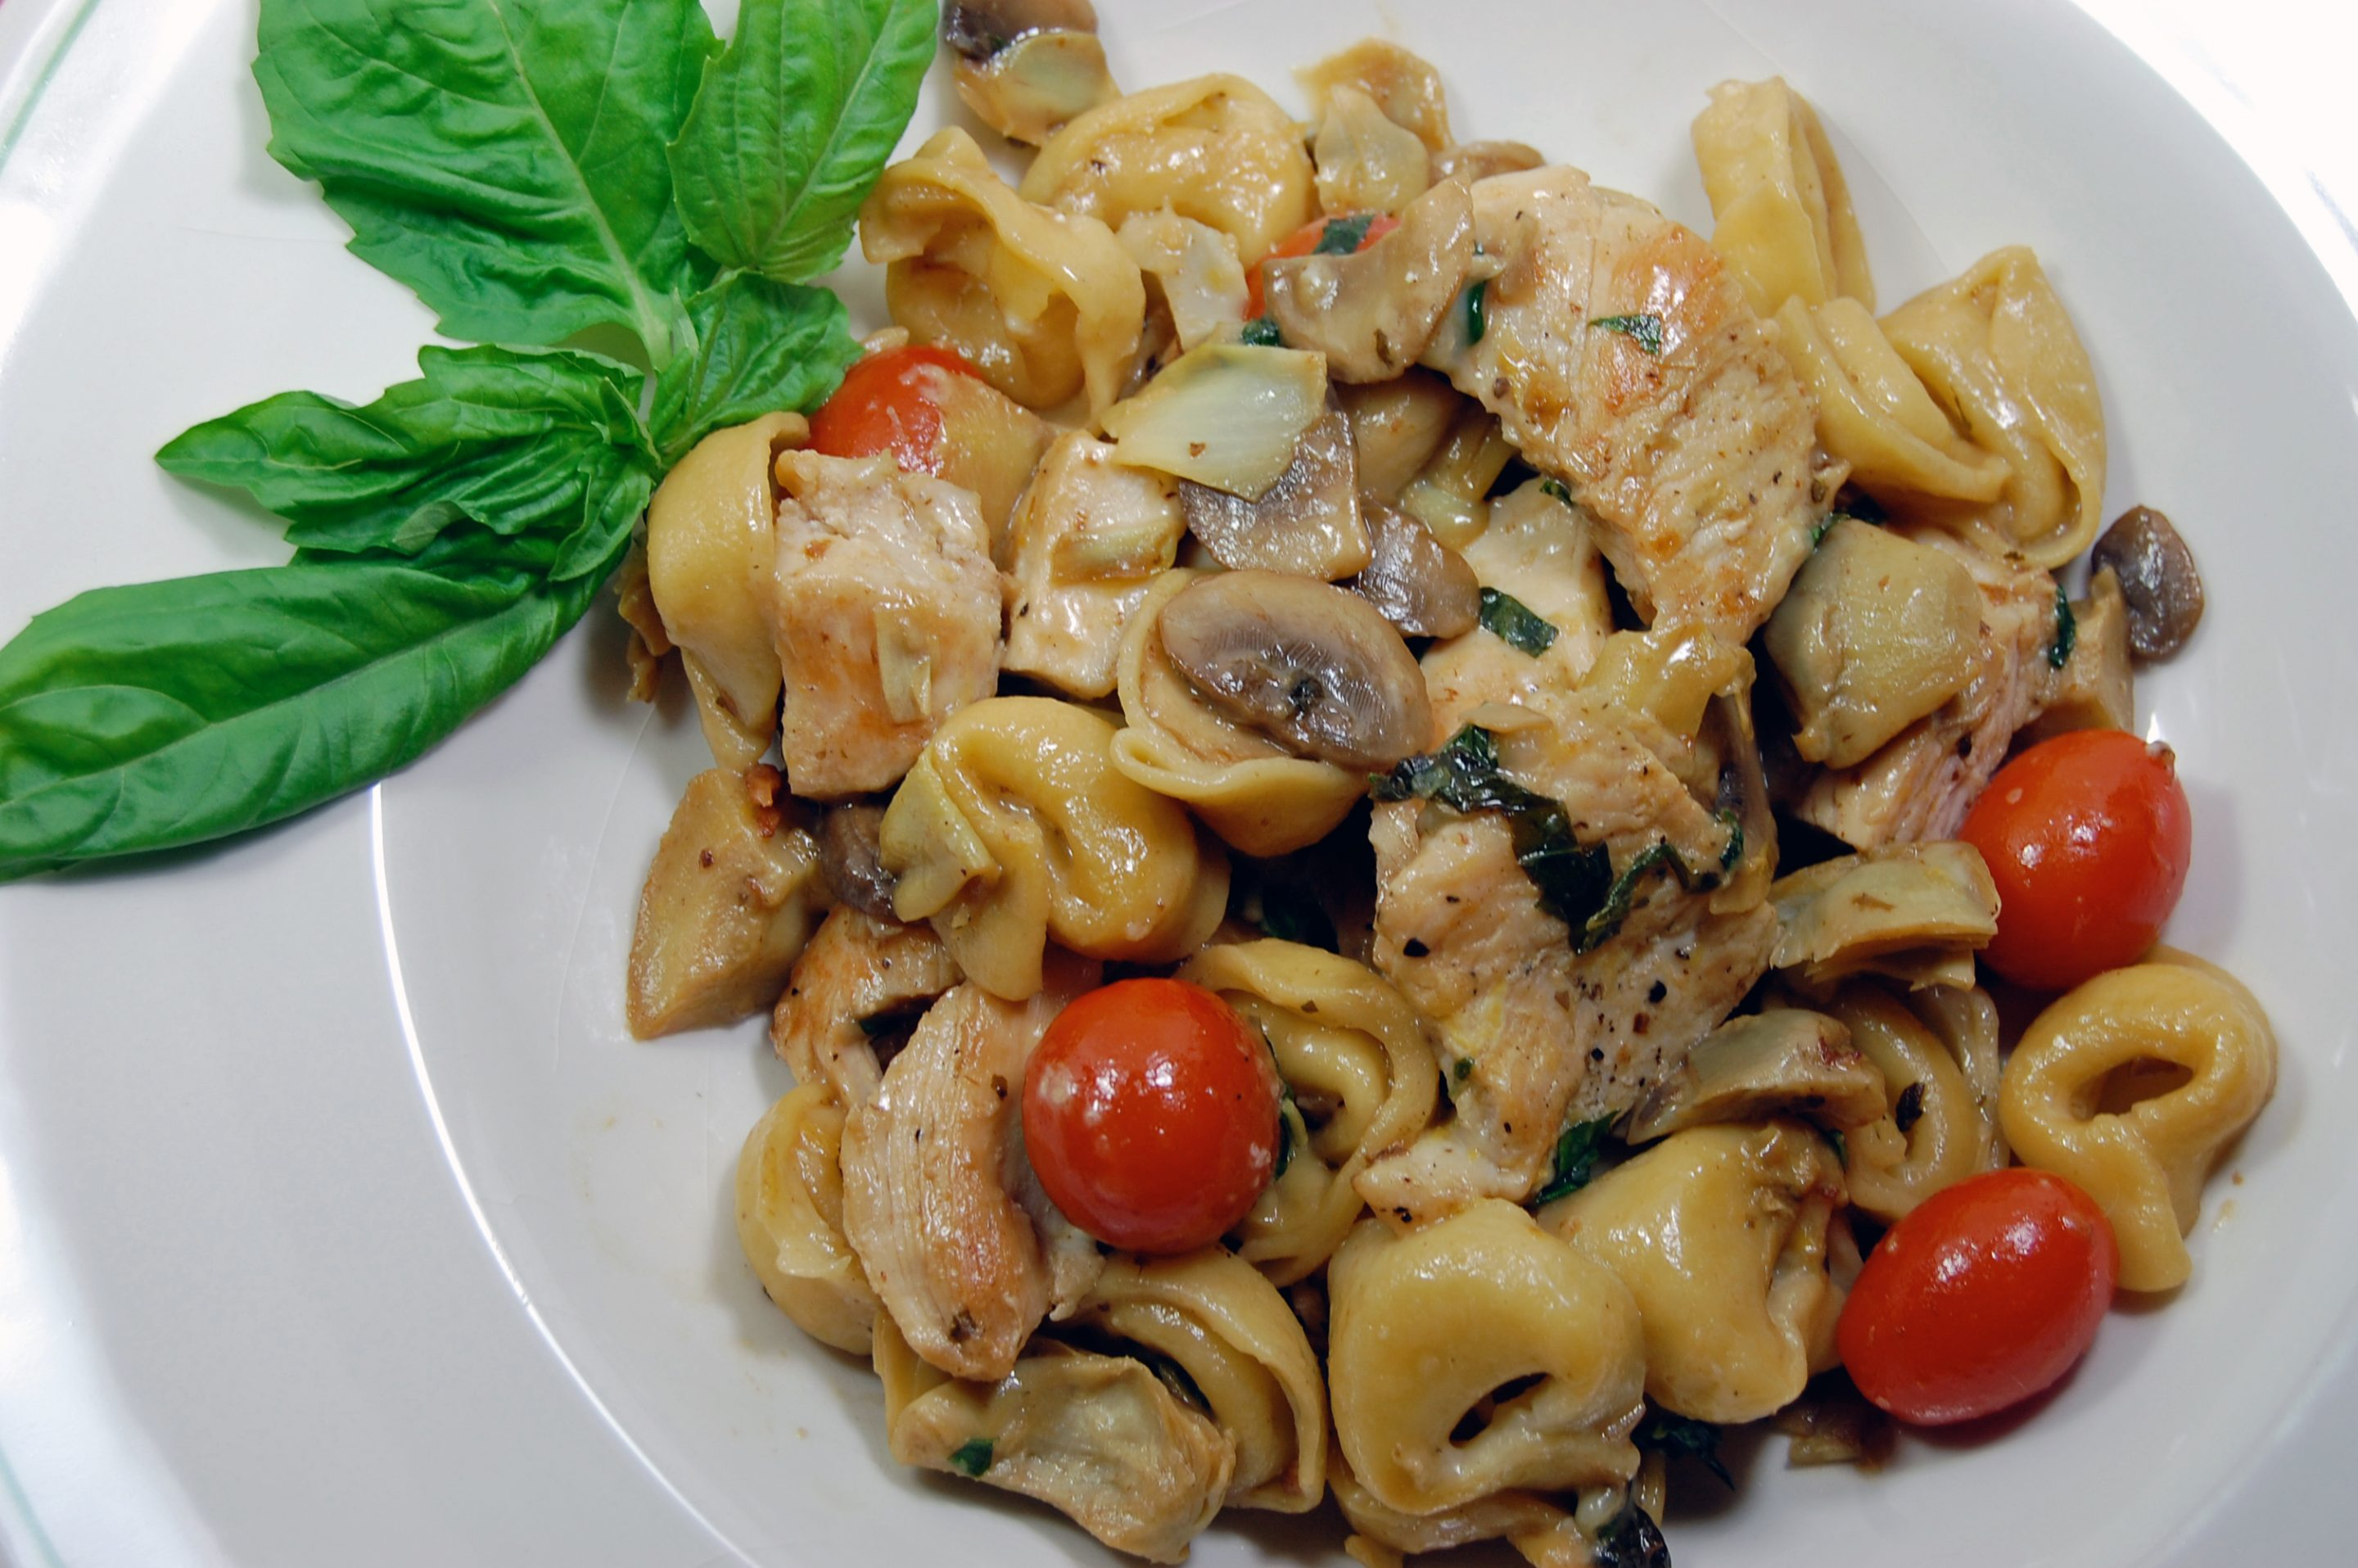 Chicken Mushrooms And Artichoke Hearts With Cheese Tortellini In A